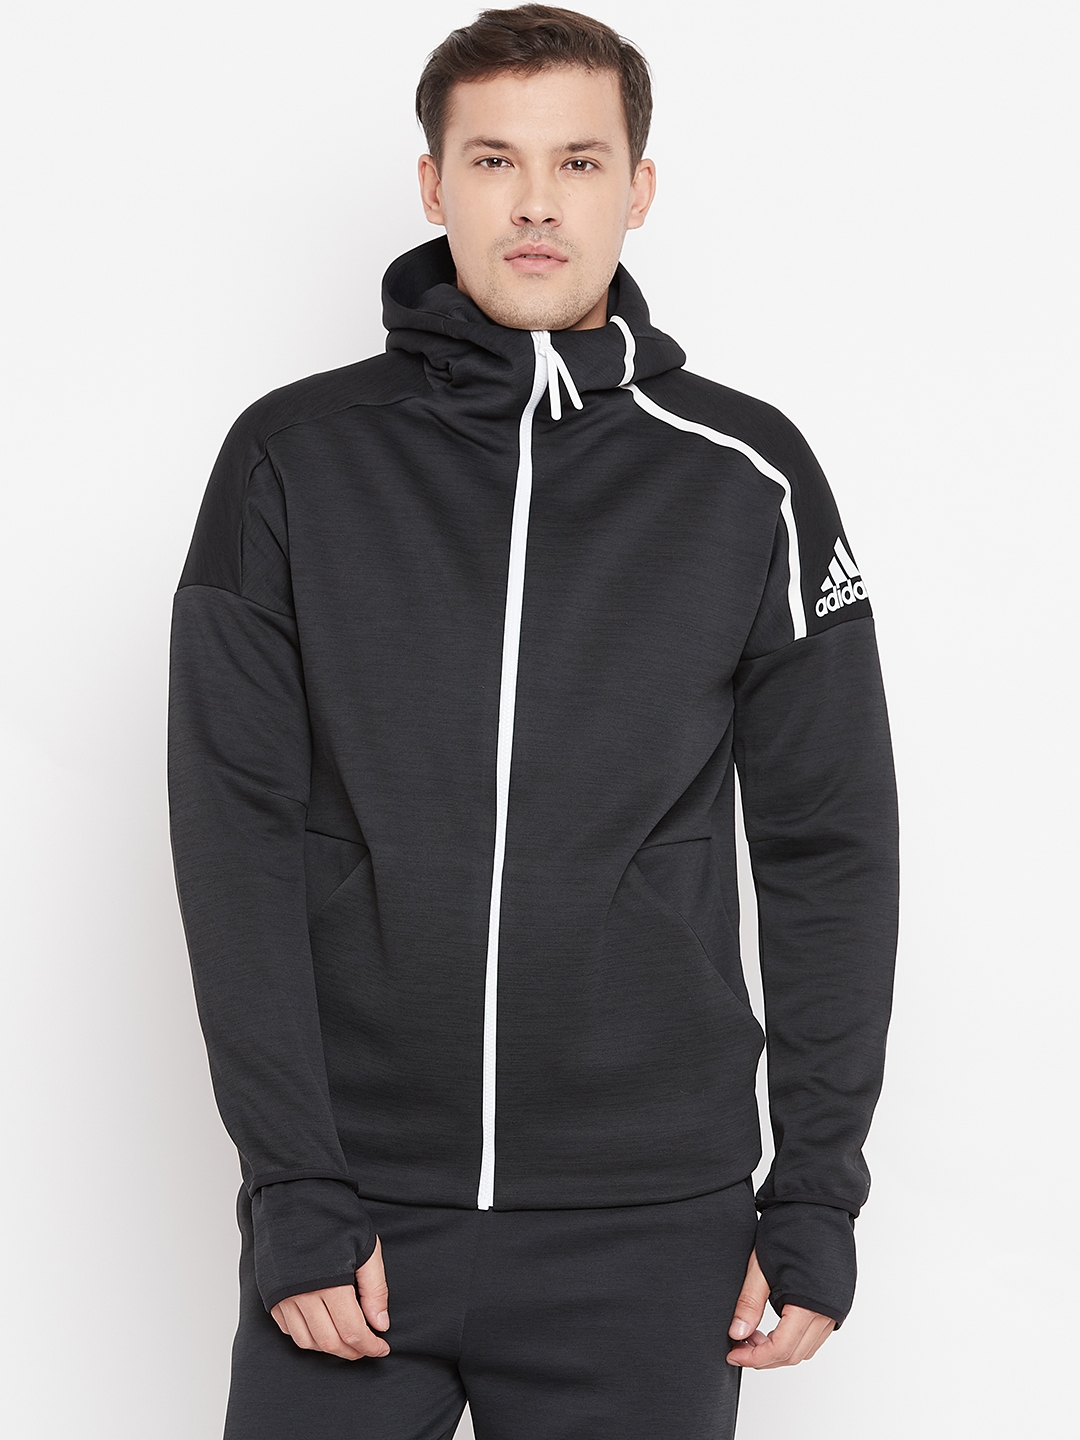 adidas Z.N.E. Fast Release Zipper Zip Hoodie Men Grey